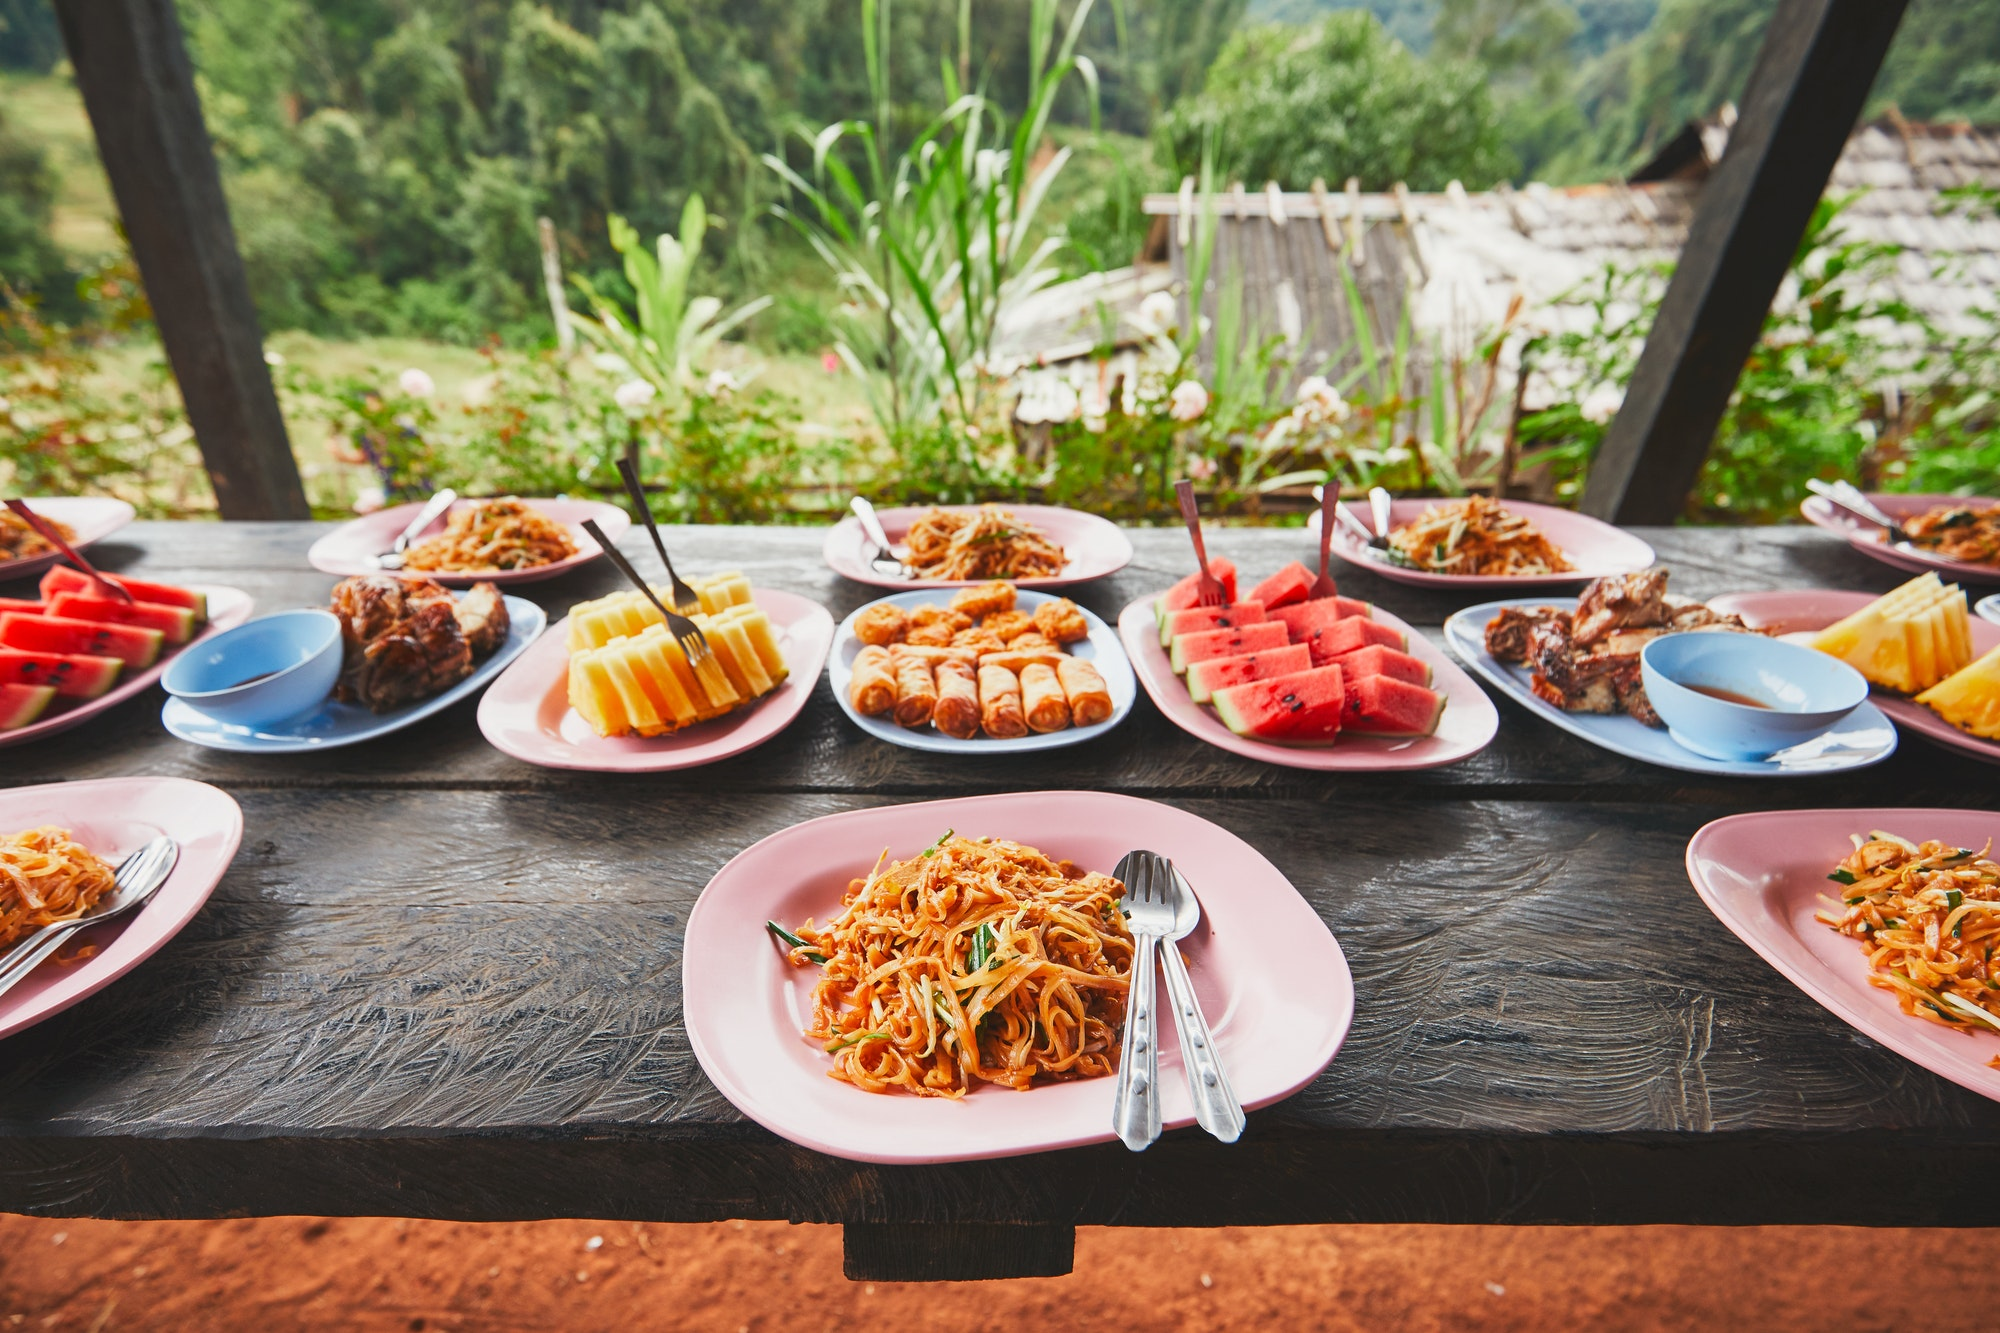 Lunch in the middle of the jungle